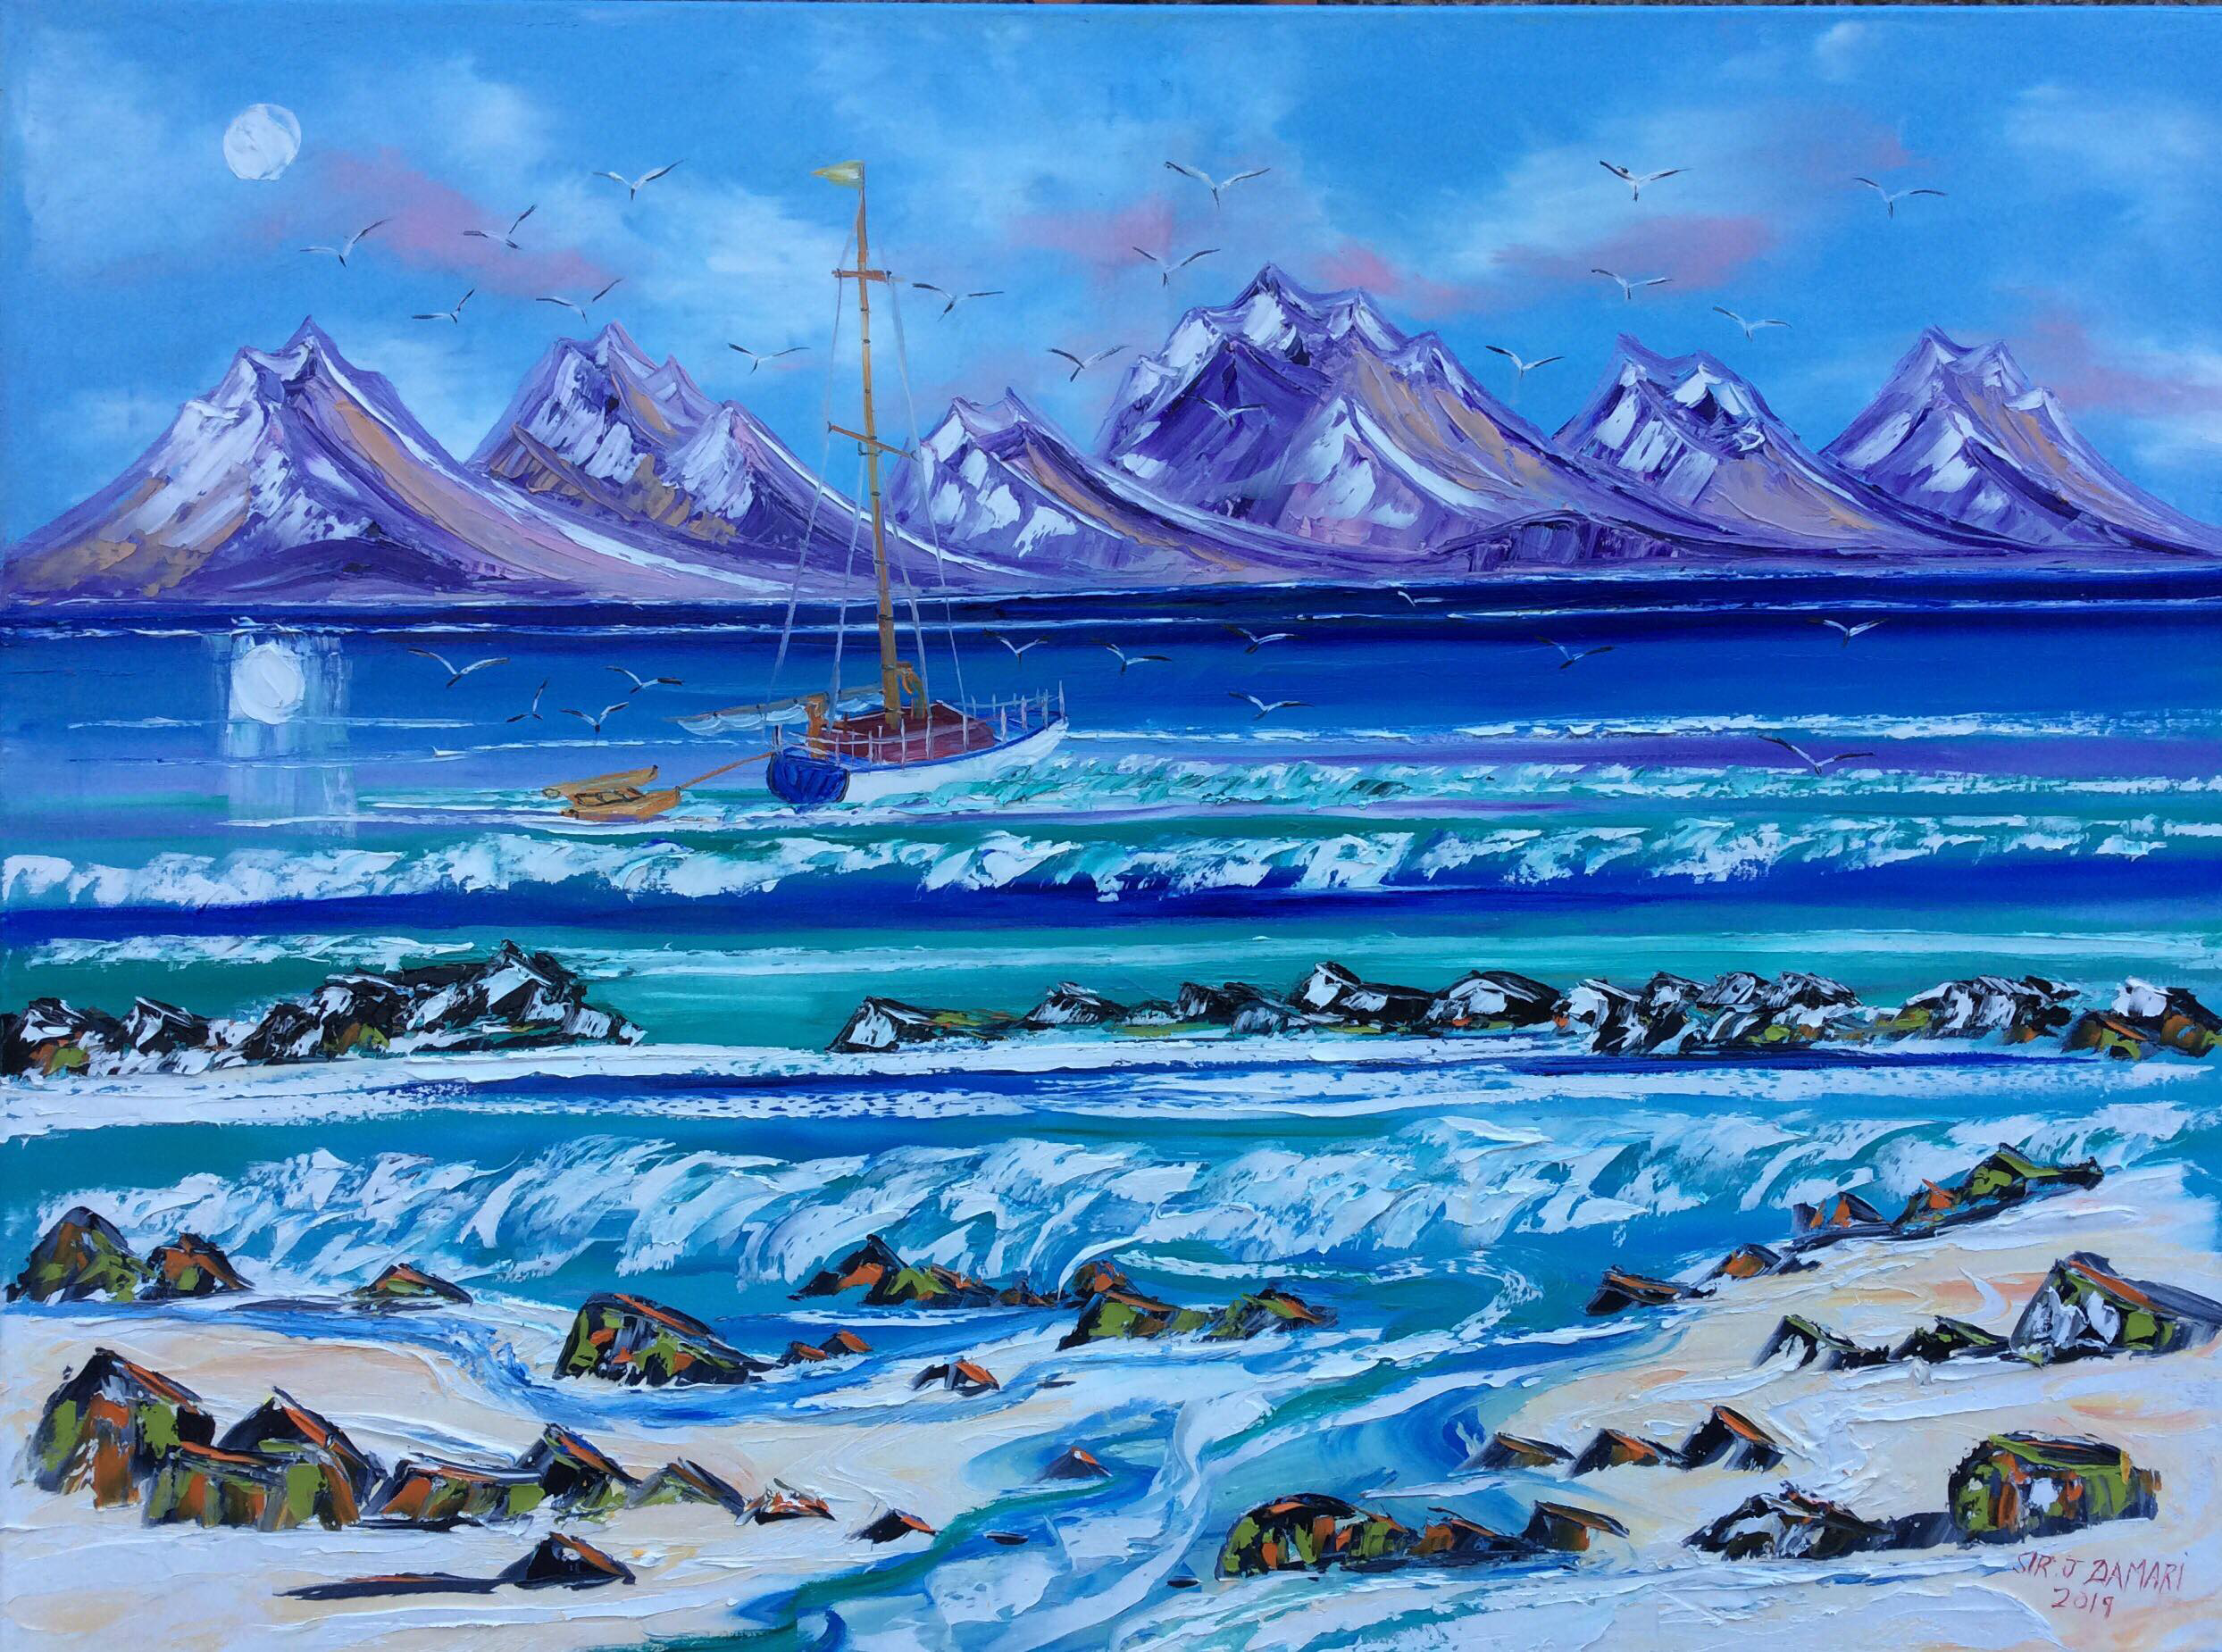 Sailing at the Minch W East, oil on canvas by John Damari